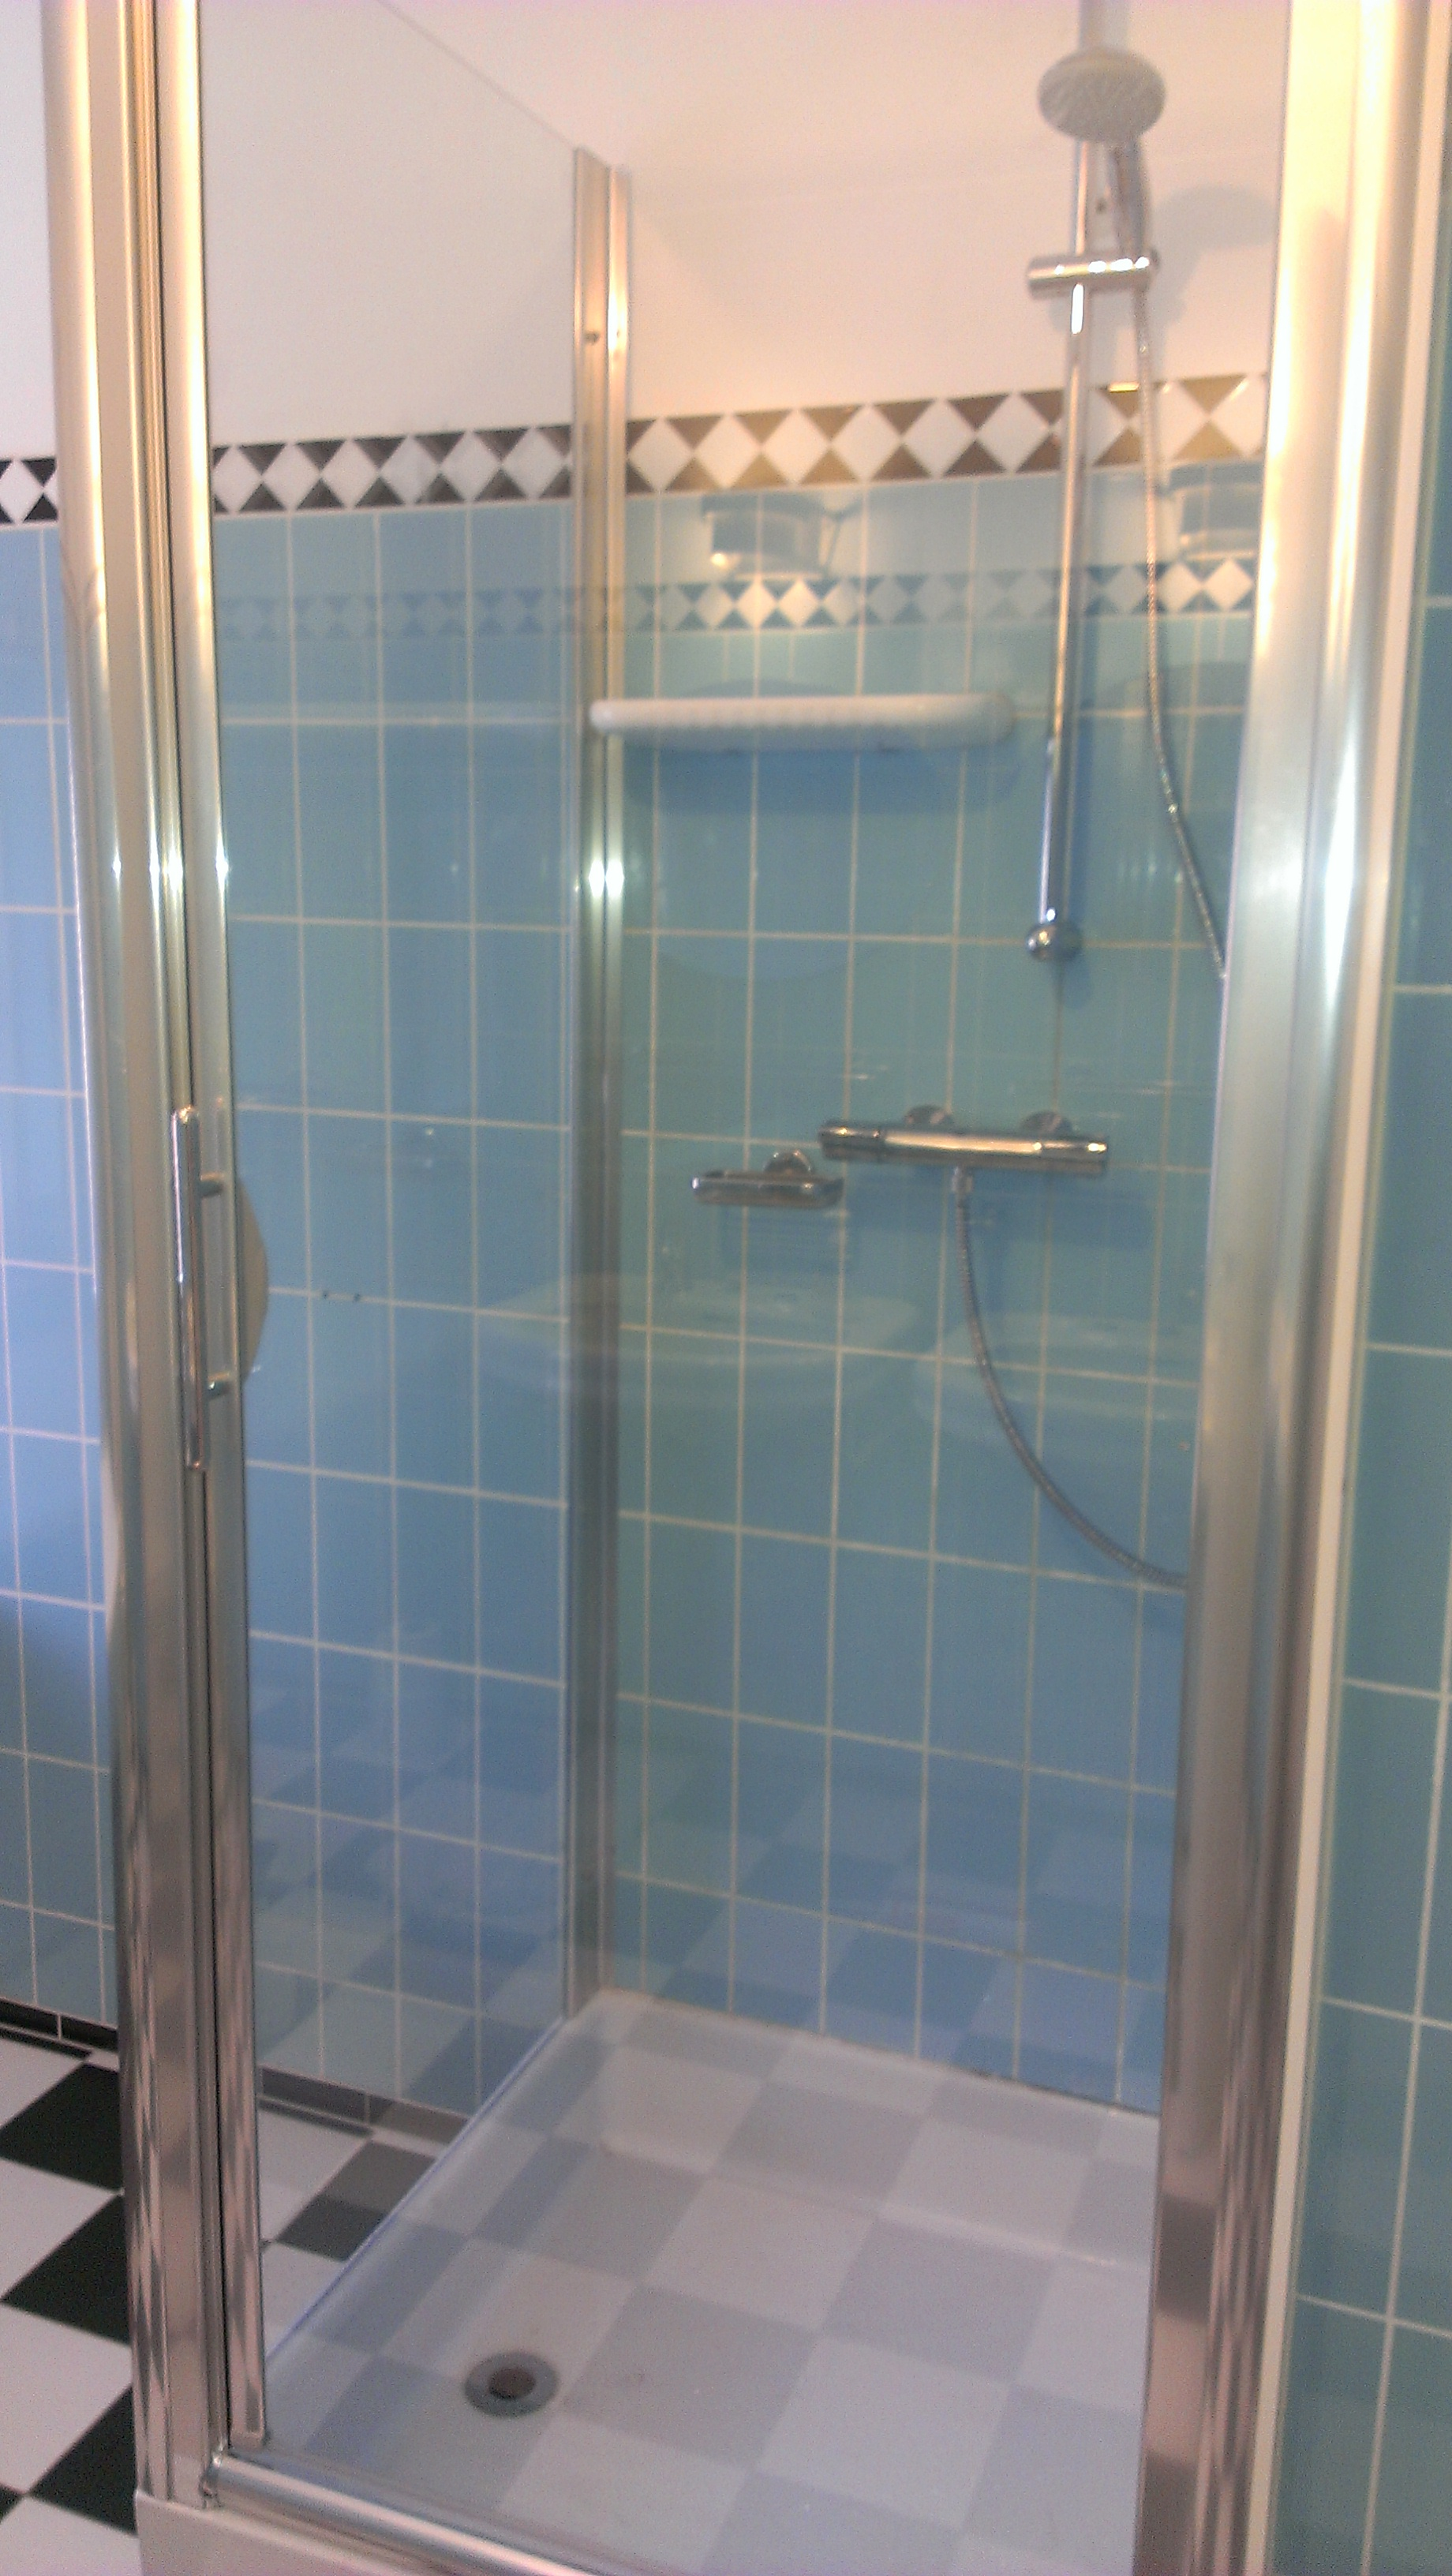 douche renovatie Ede dec 2013